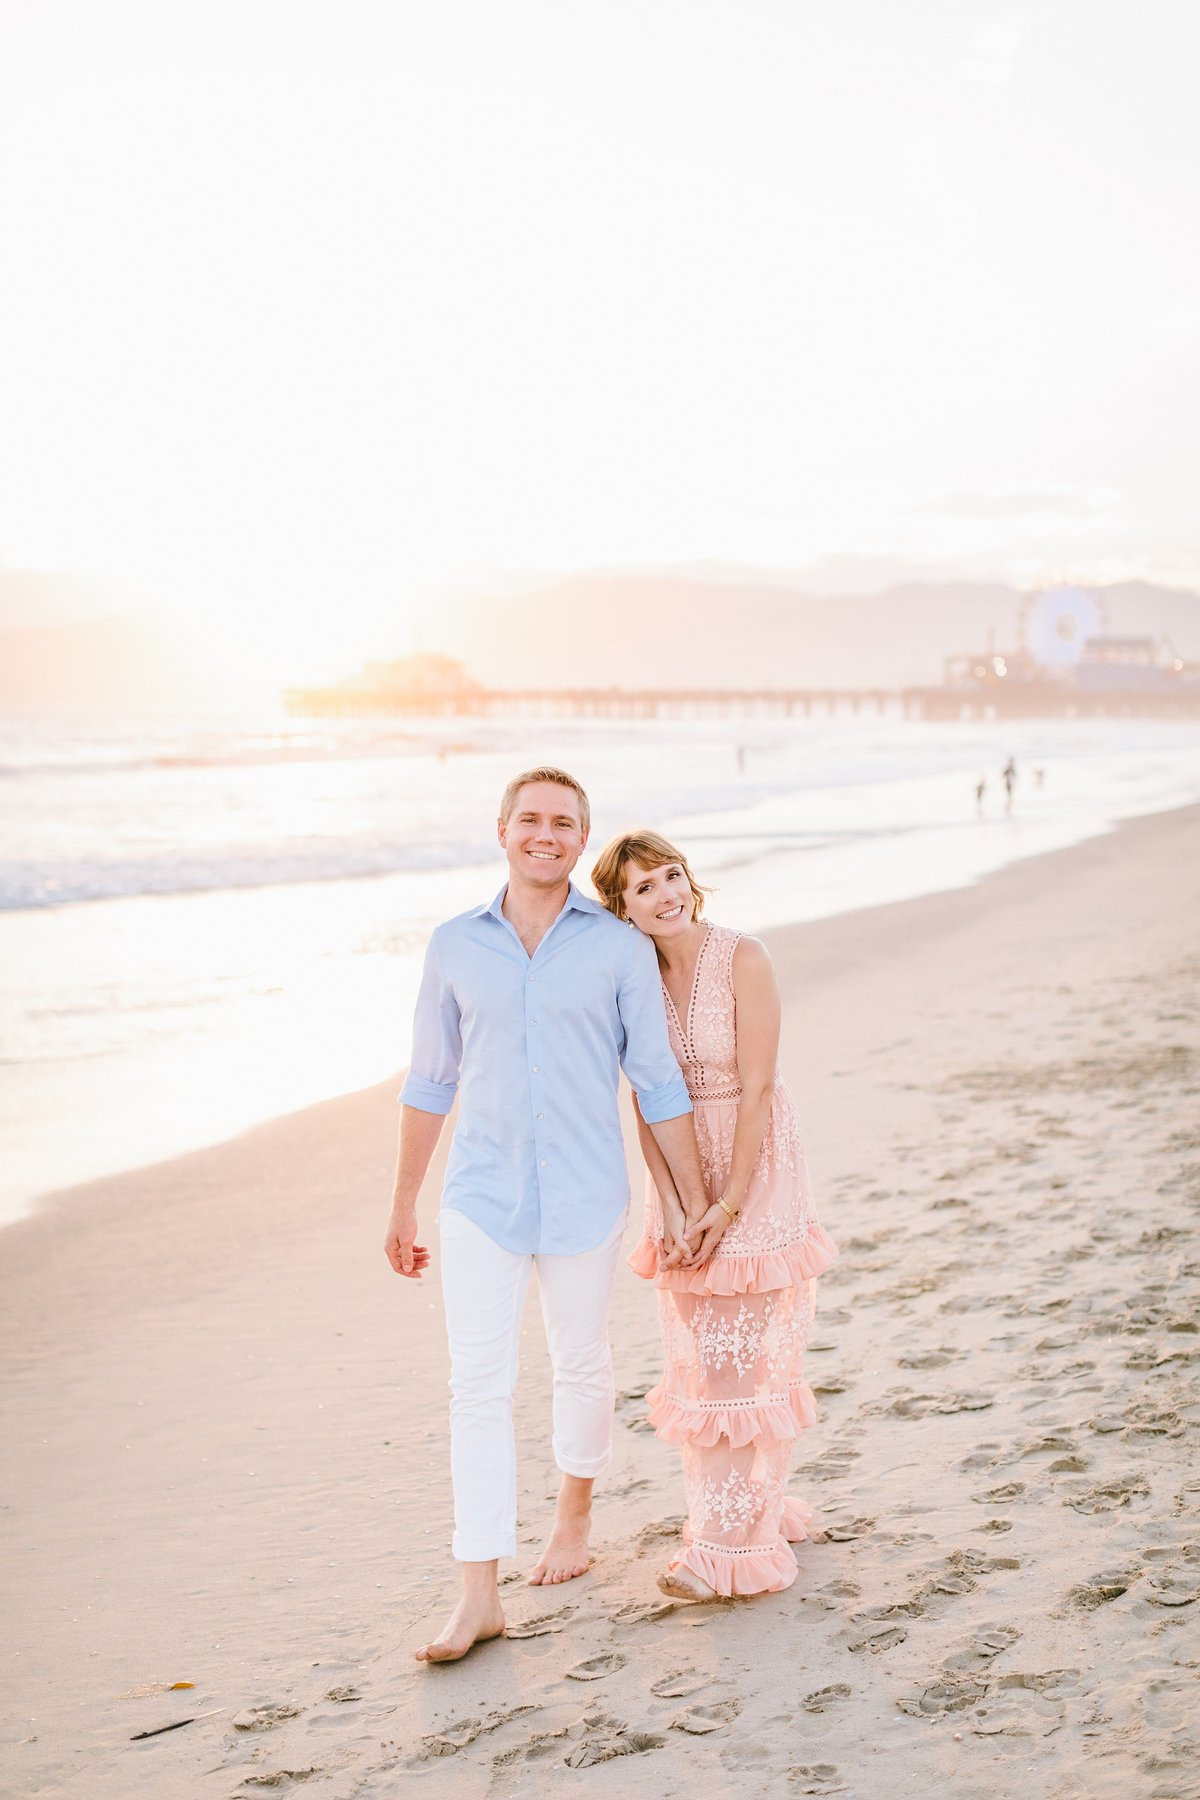 Best California Engagement Photographer_Jodee Debes Photography_108